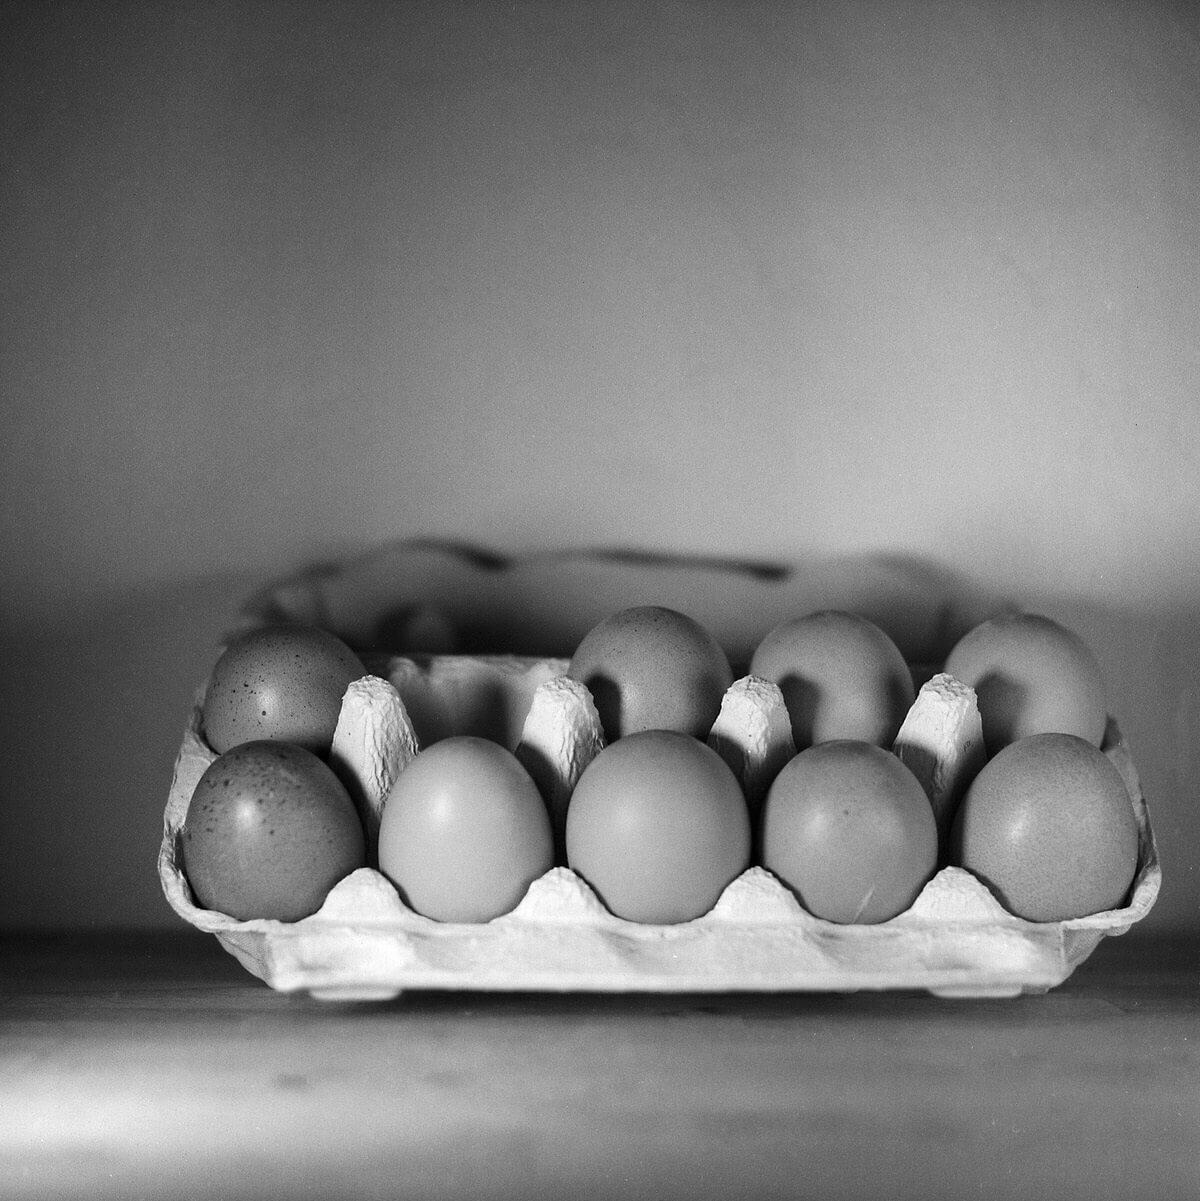 Eggs #1 – Still Life Photography - Yashica MAT-124 with Fomapan 200 Creative